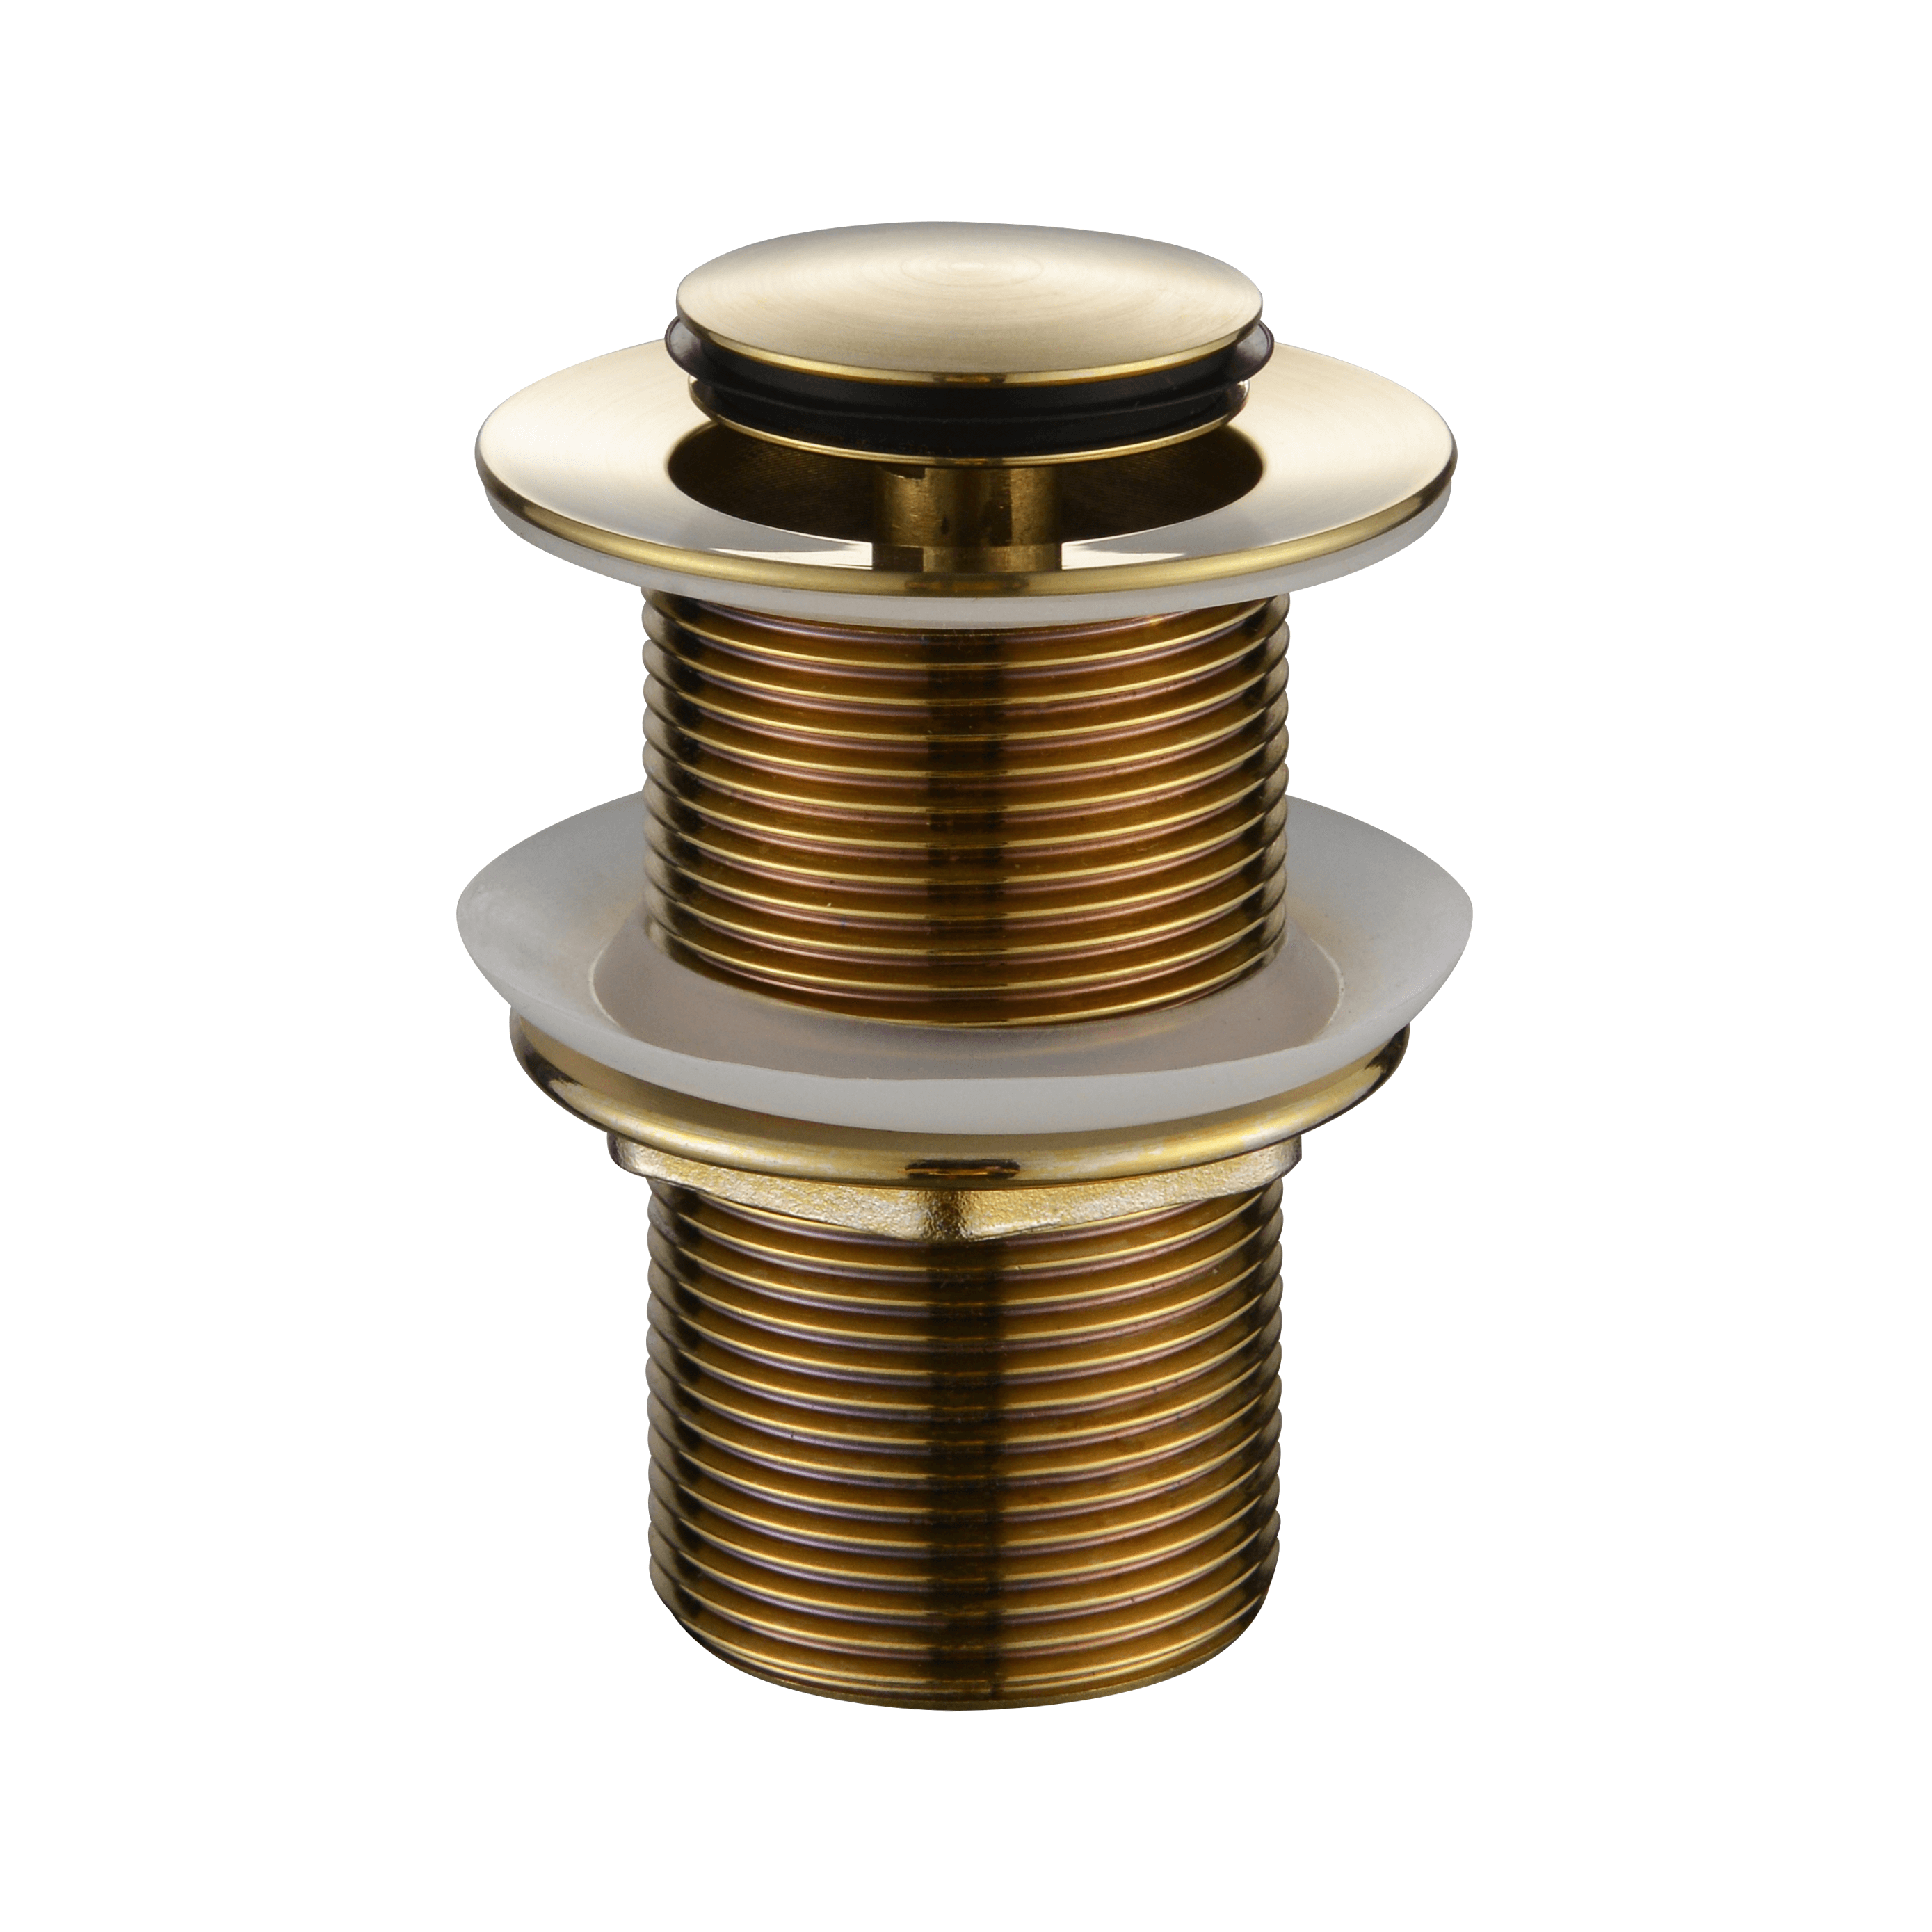 Pop-up Waste 32mm Non Overflow-PVD Brushed Bronze